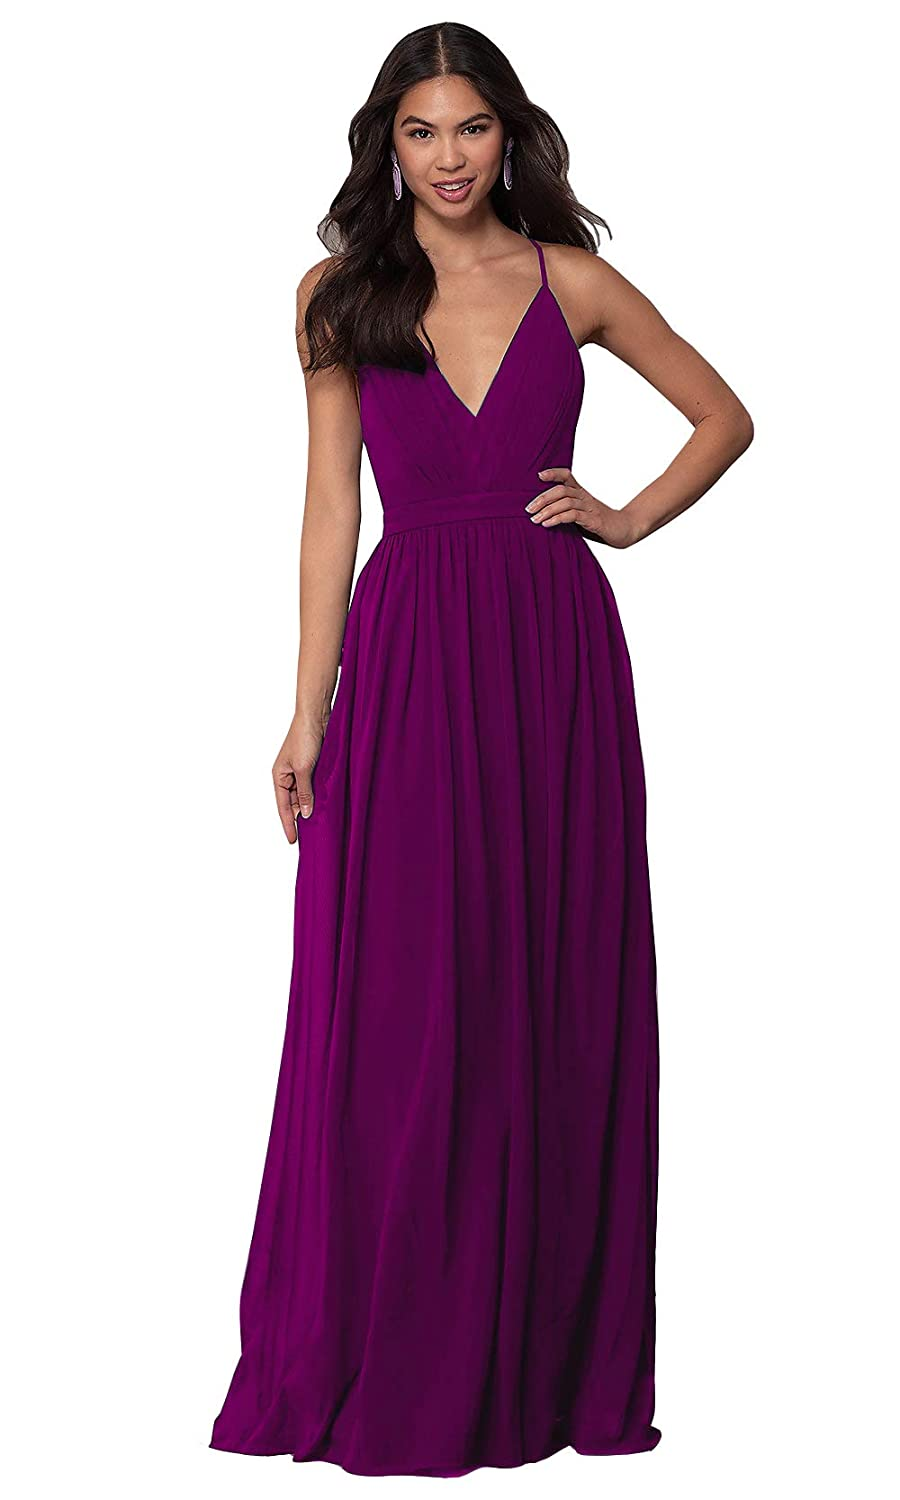 Dark Purple Sexy V Neck Spaghetti Straps Criss Cross A Line Long Formal Bridesmaid Dresses